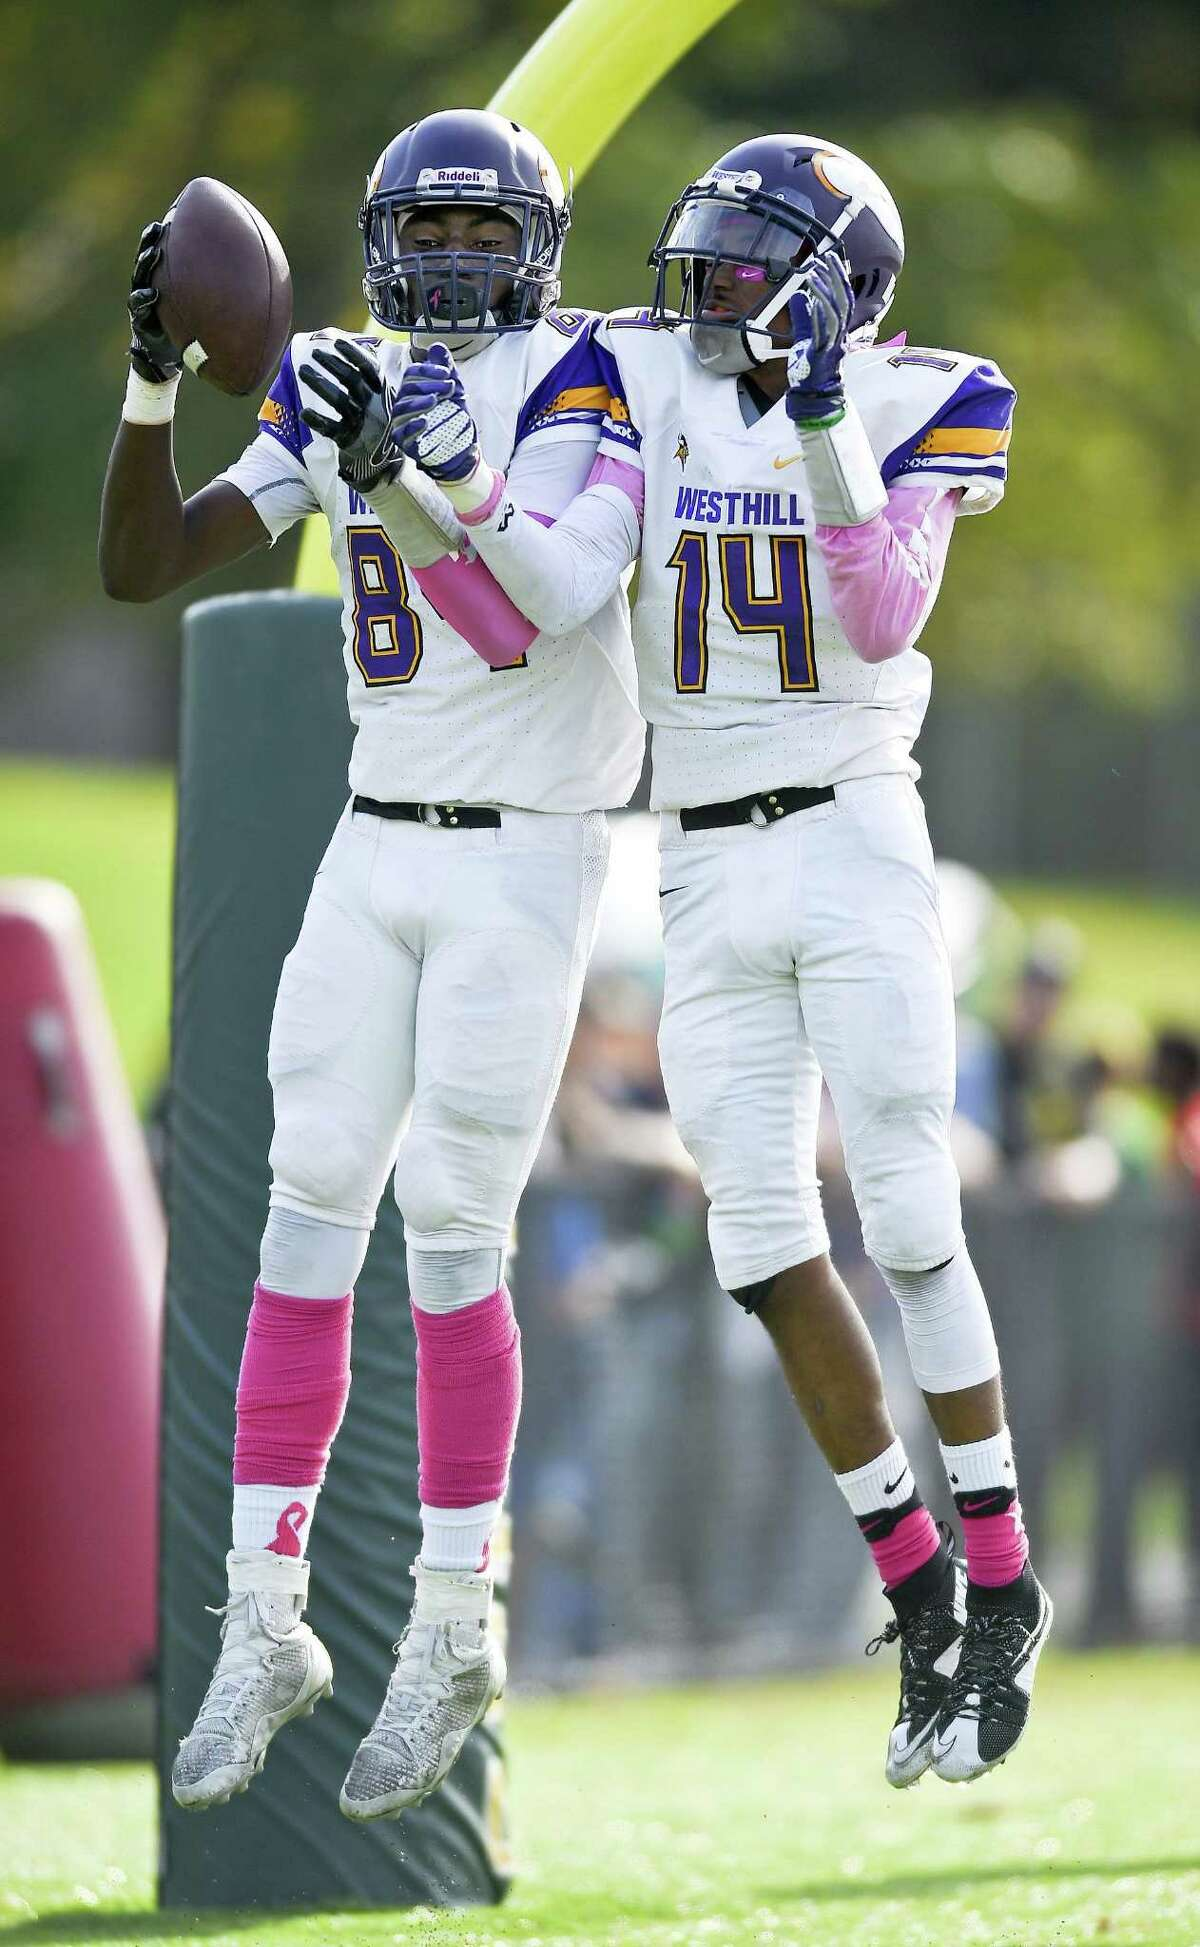 Westhill's Wyklend Turenne (84) celebrates his touchdown with teammate D'aeren Carson (14) during the Vikings' contest with Stamford rival Trinity Catholic Saturday. Westhill won 30-17.